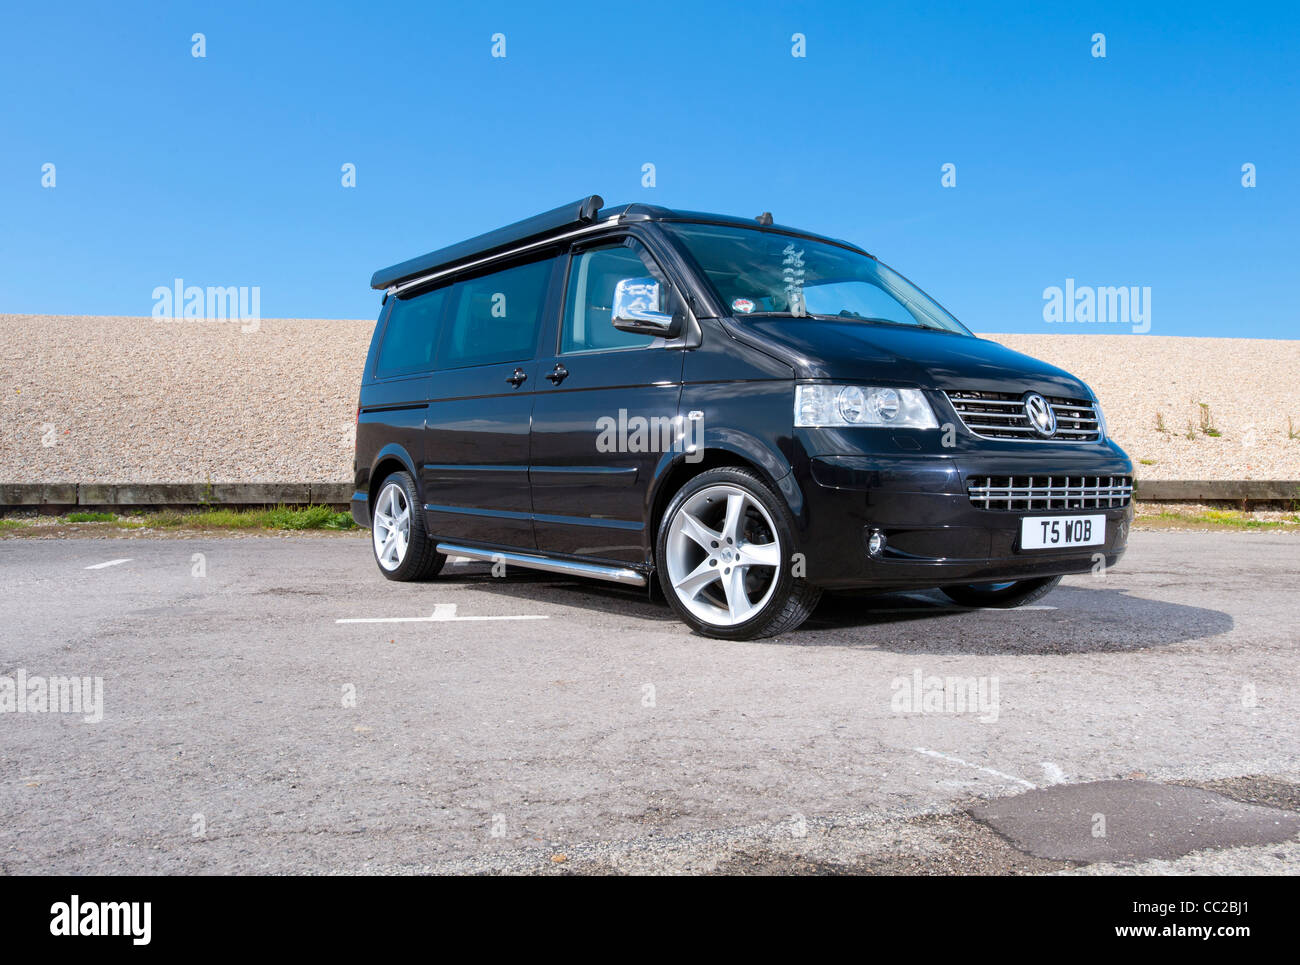 volkswagen vw t5 california camper van stock photo 41849641 alamy. Black Bedroom Furniture Sets. Home Design Ideas